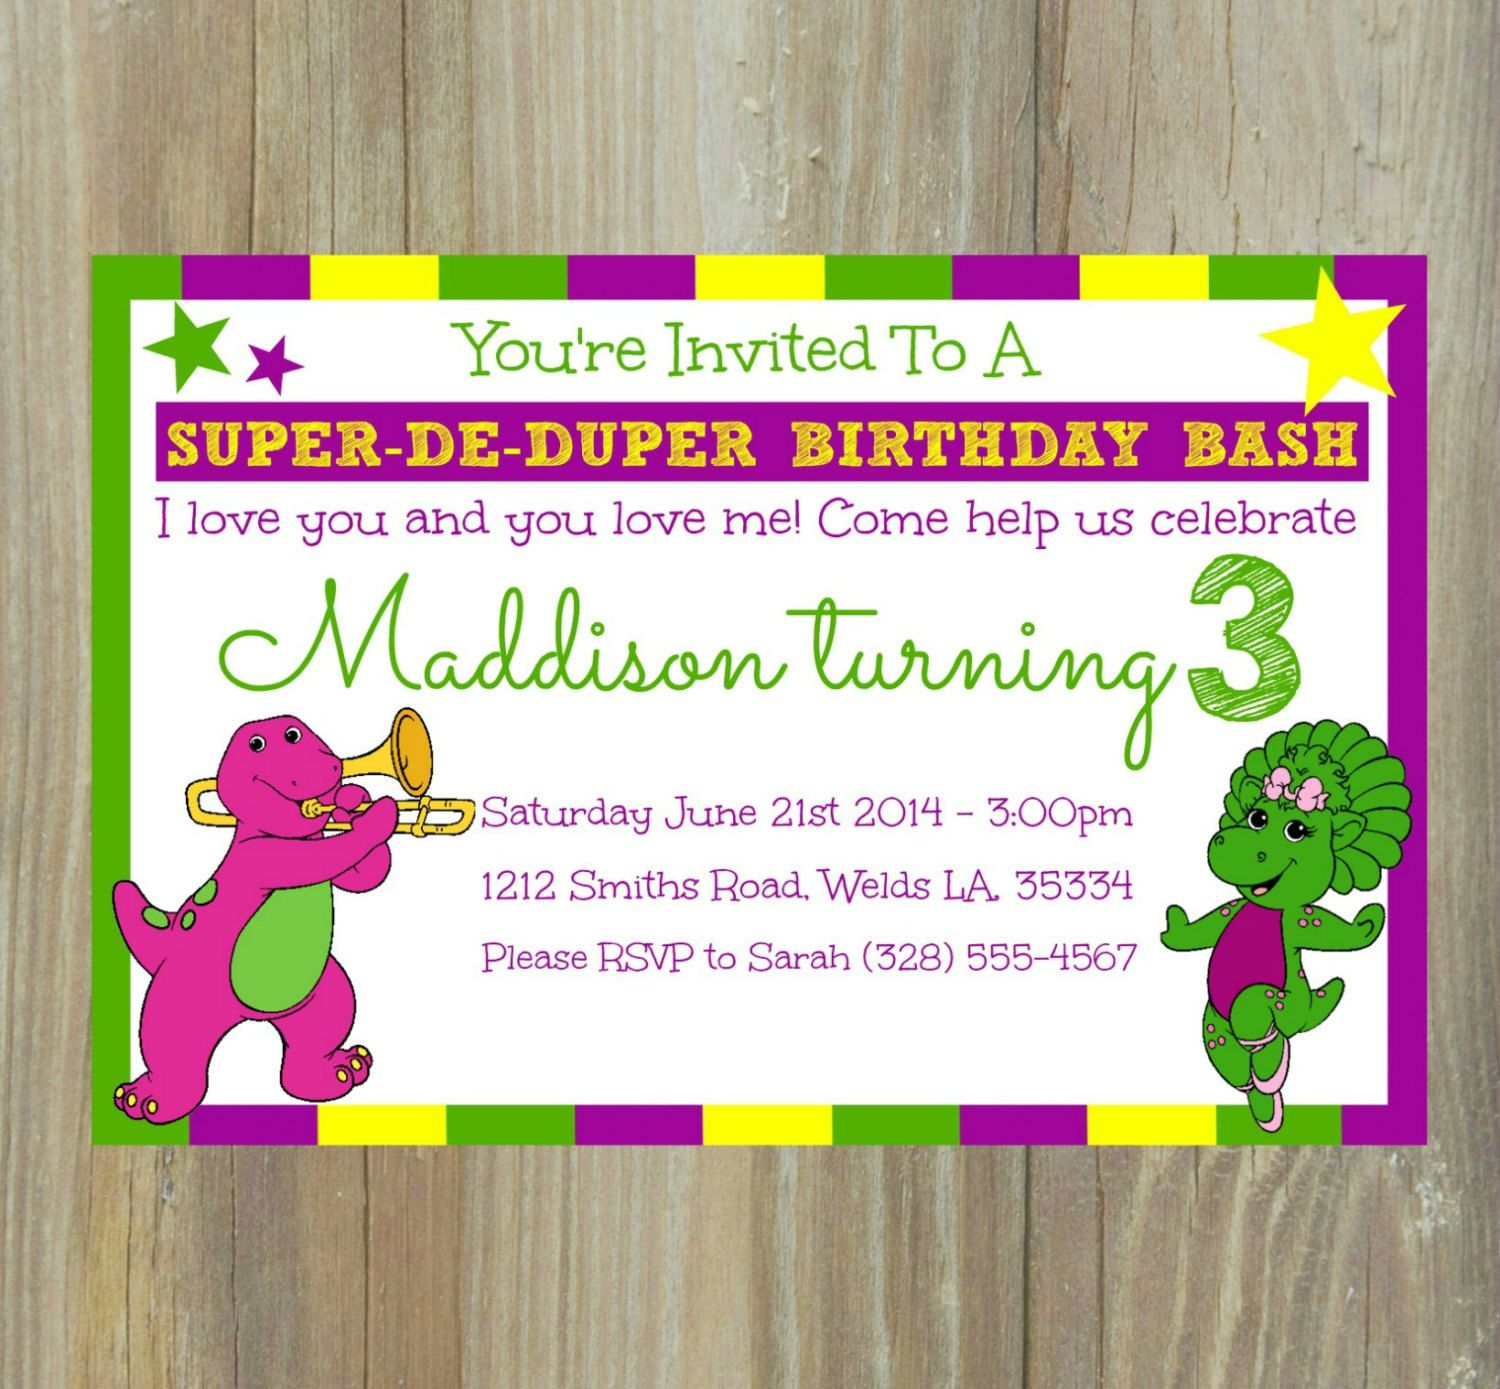 Barney birthday invitation barney the dinosaur by kalaskorner barney birthday invitation barney the dinosaur by kalaskorner monicamarmolfo Images